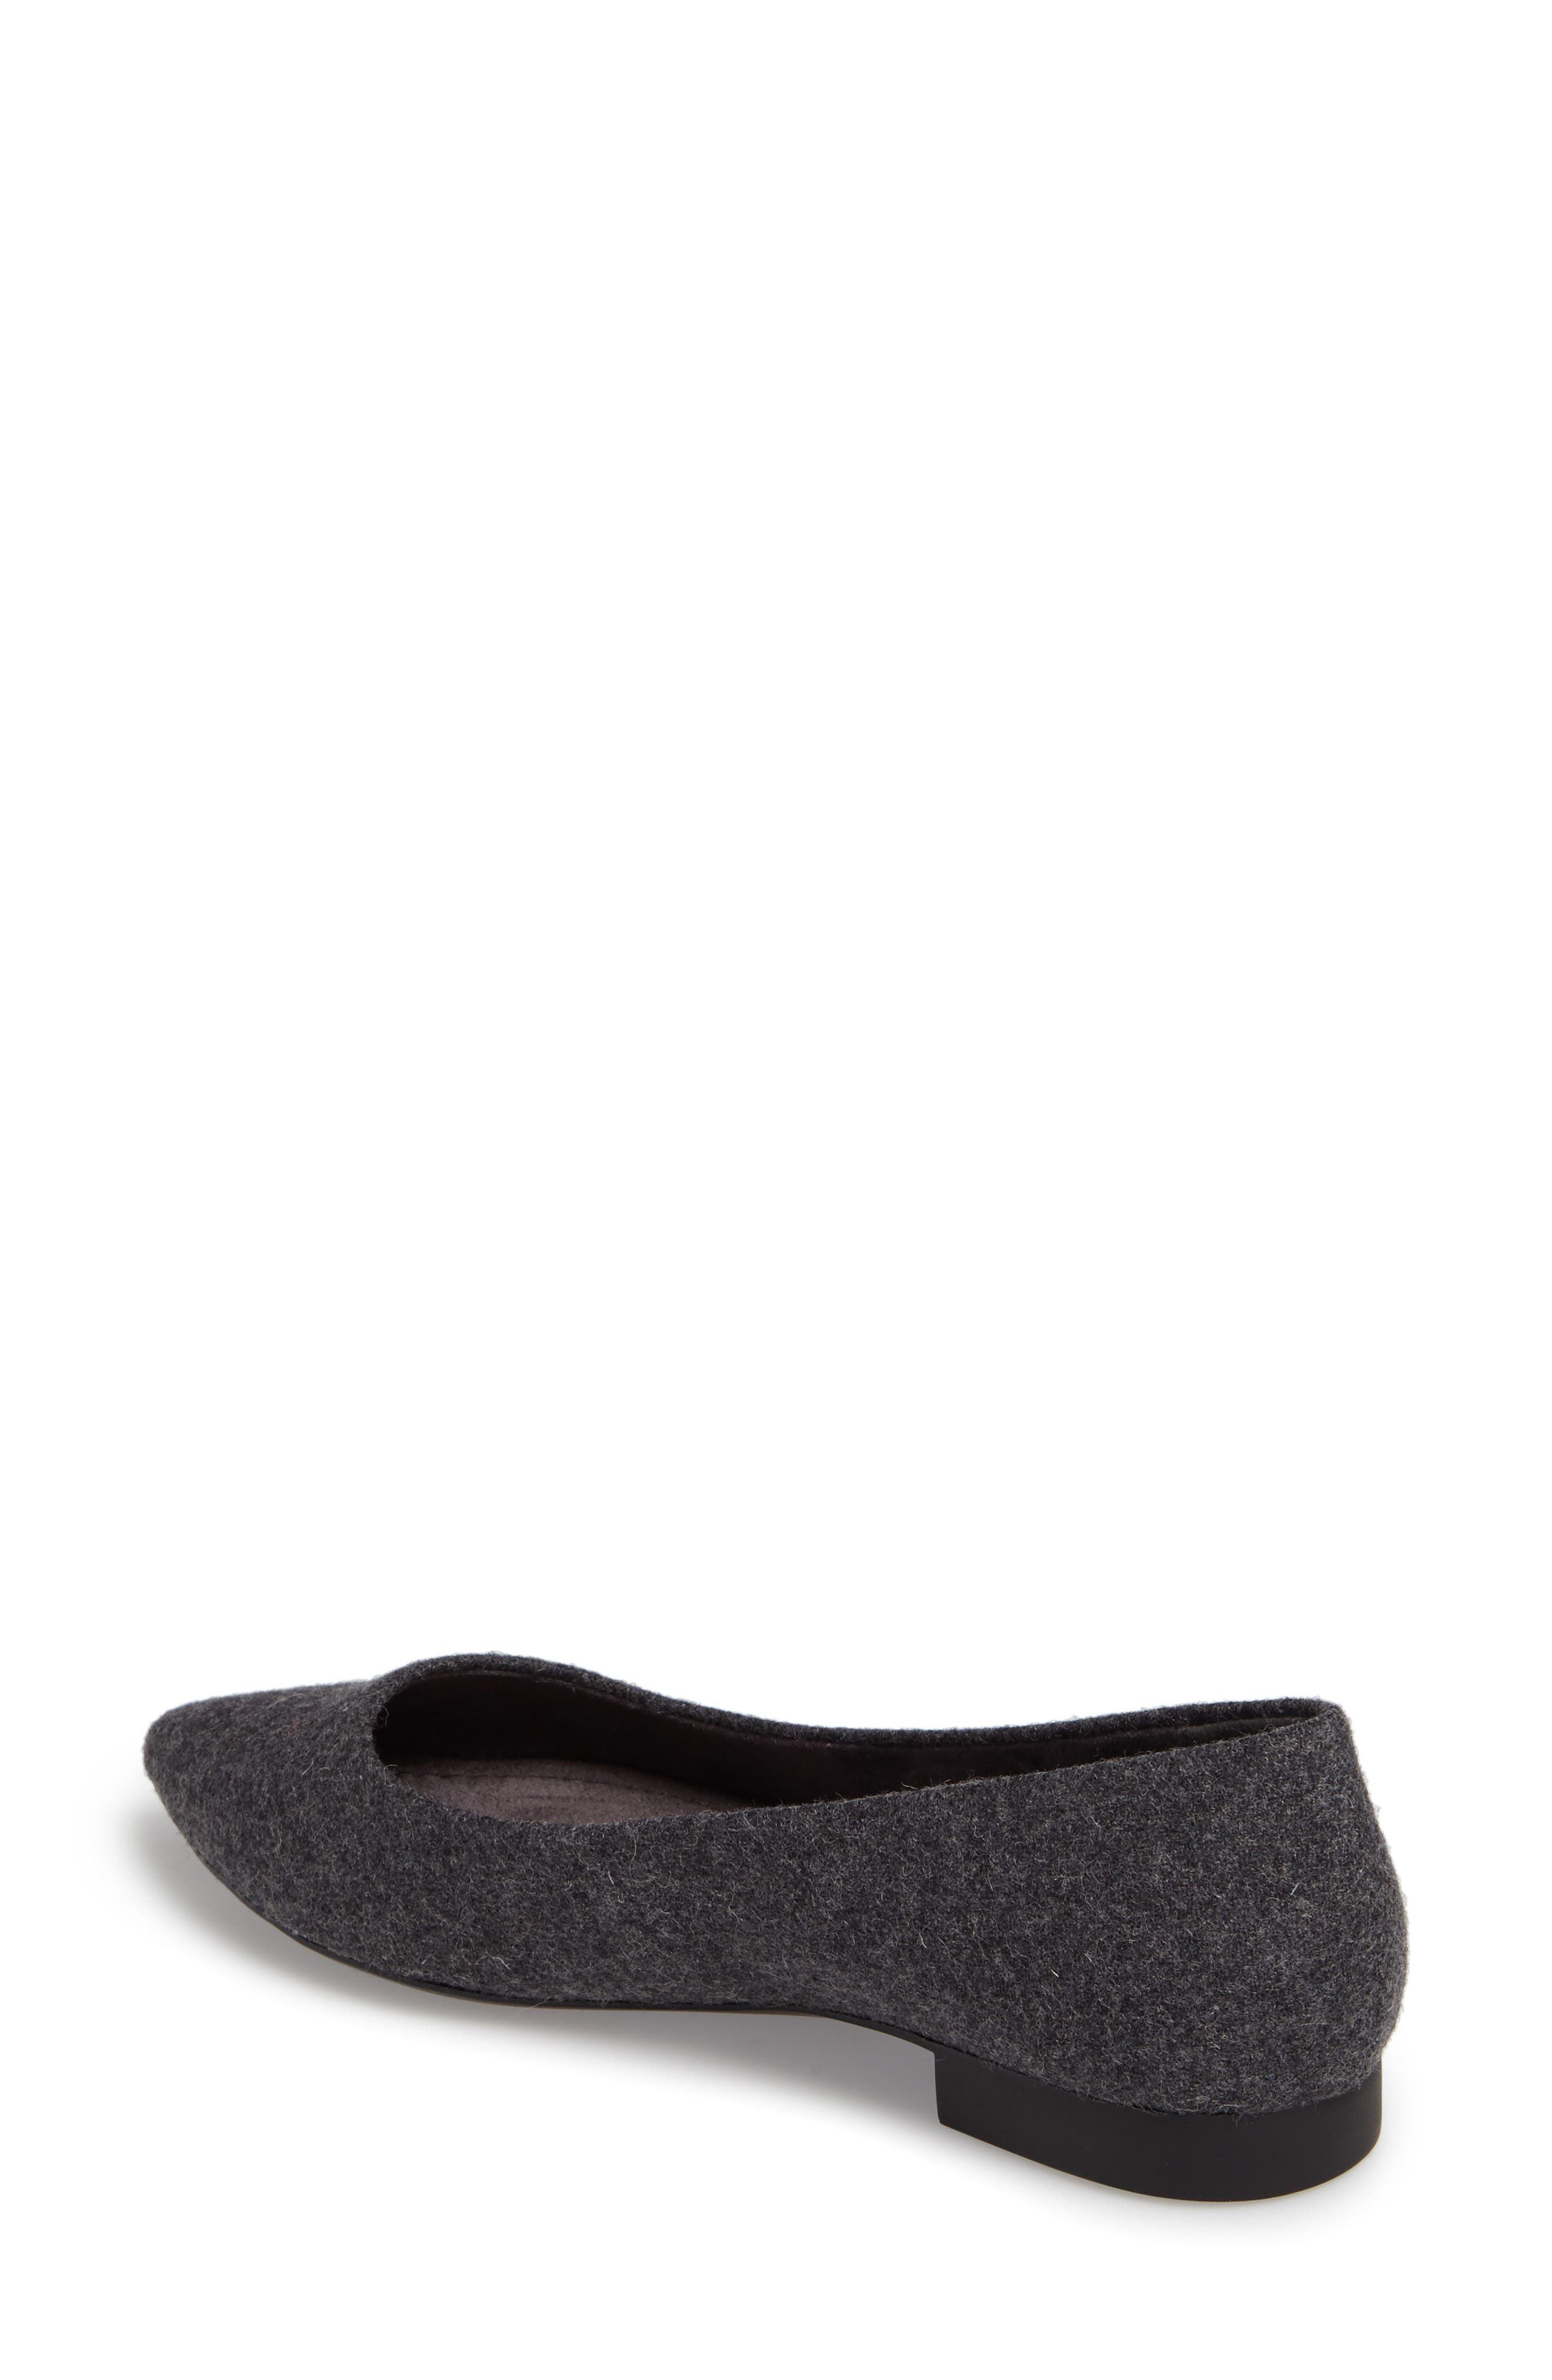 'Vivien' Pointy Toe Flat,                             Alternate thumbnail 2, color,                             GREY FLANNEL FABRIC